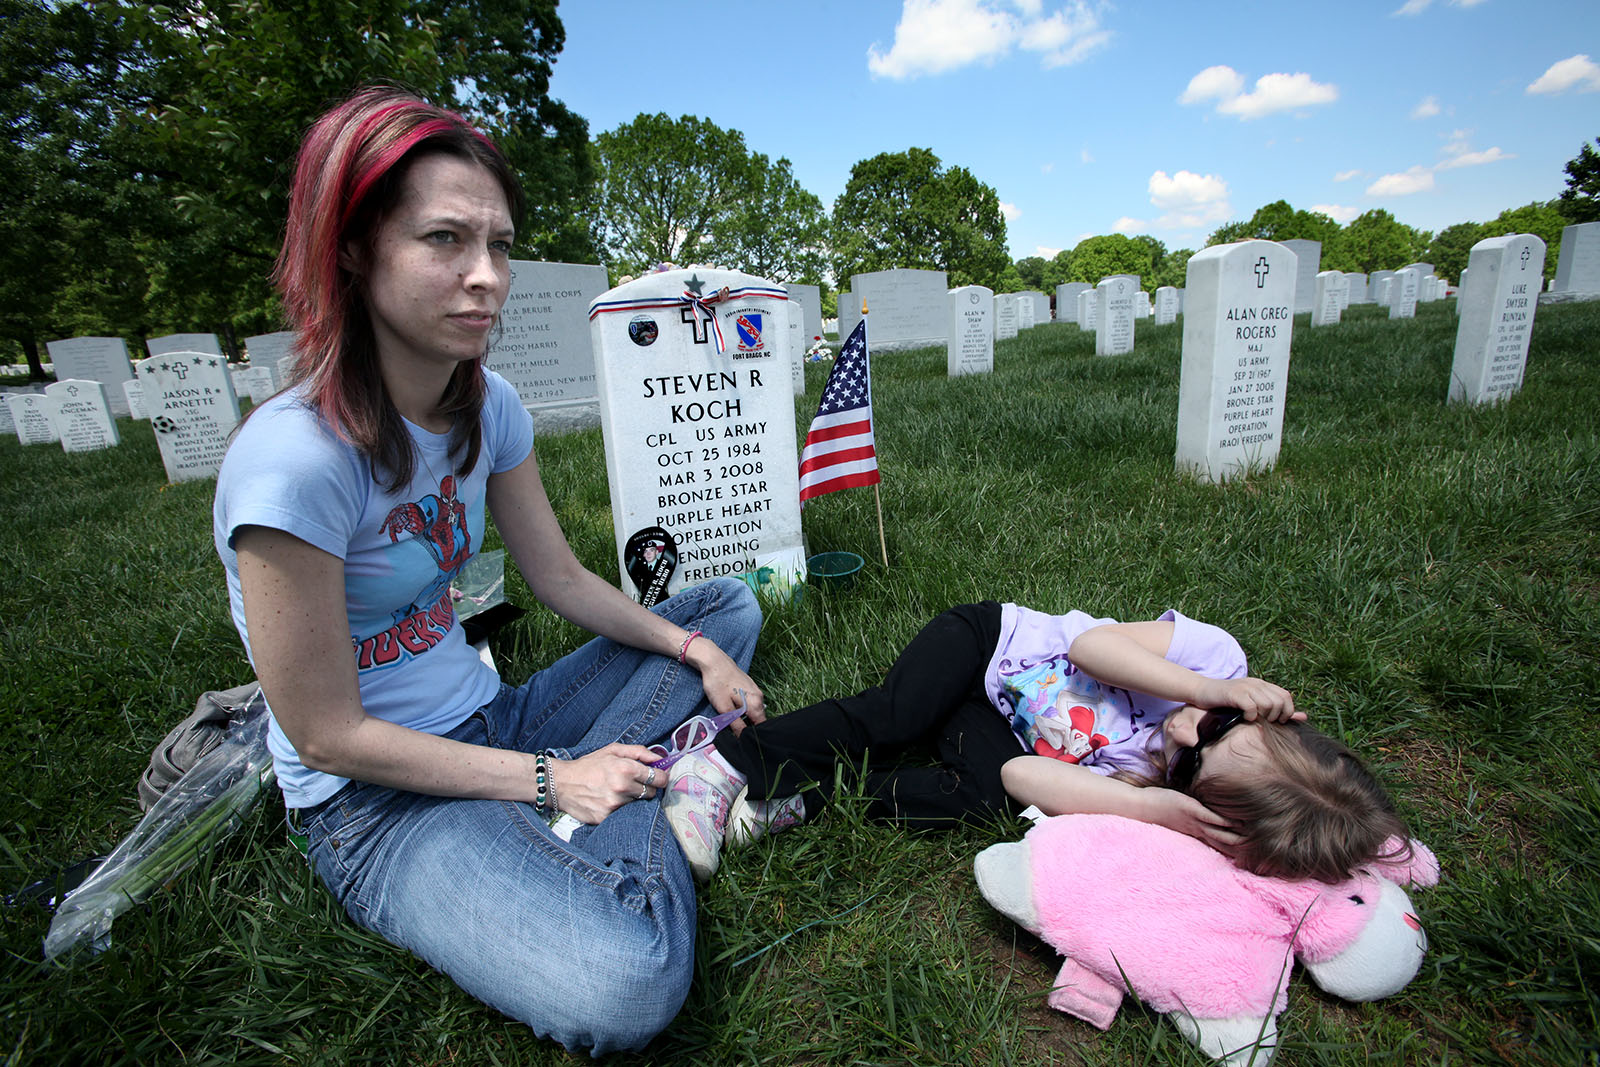 Amy is visiting her husband Steve's grave at Arlington National Cemetery. Their daughter Zoe is with her. He died in Afghanistan in 2008.